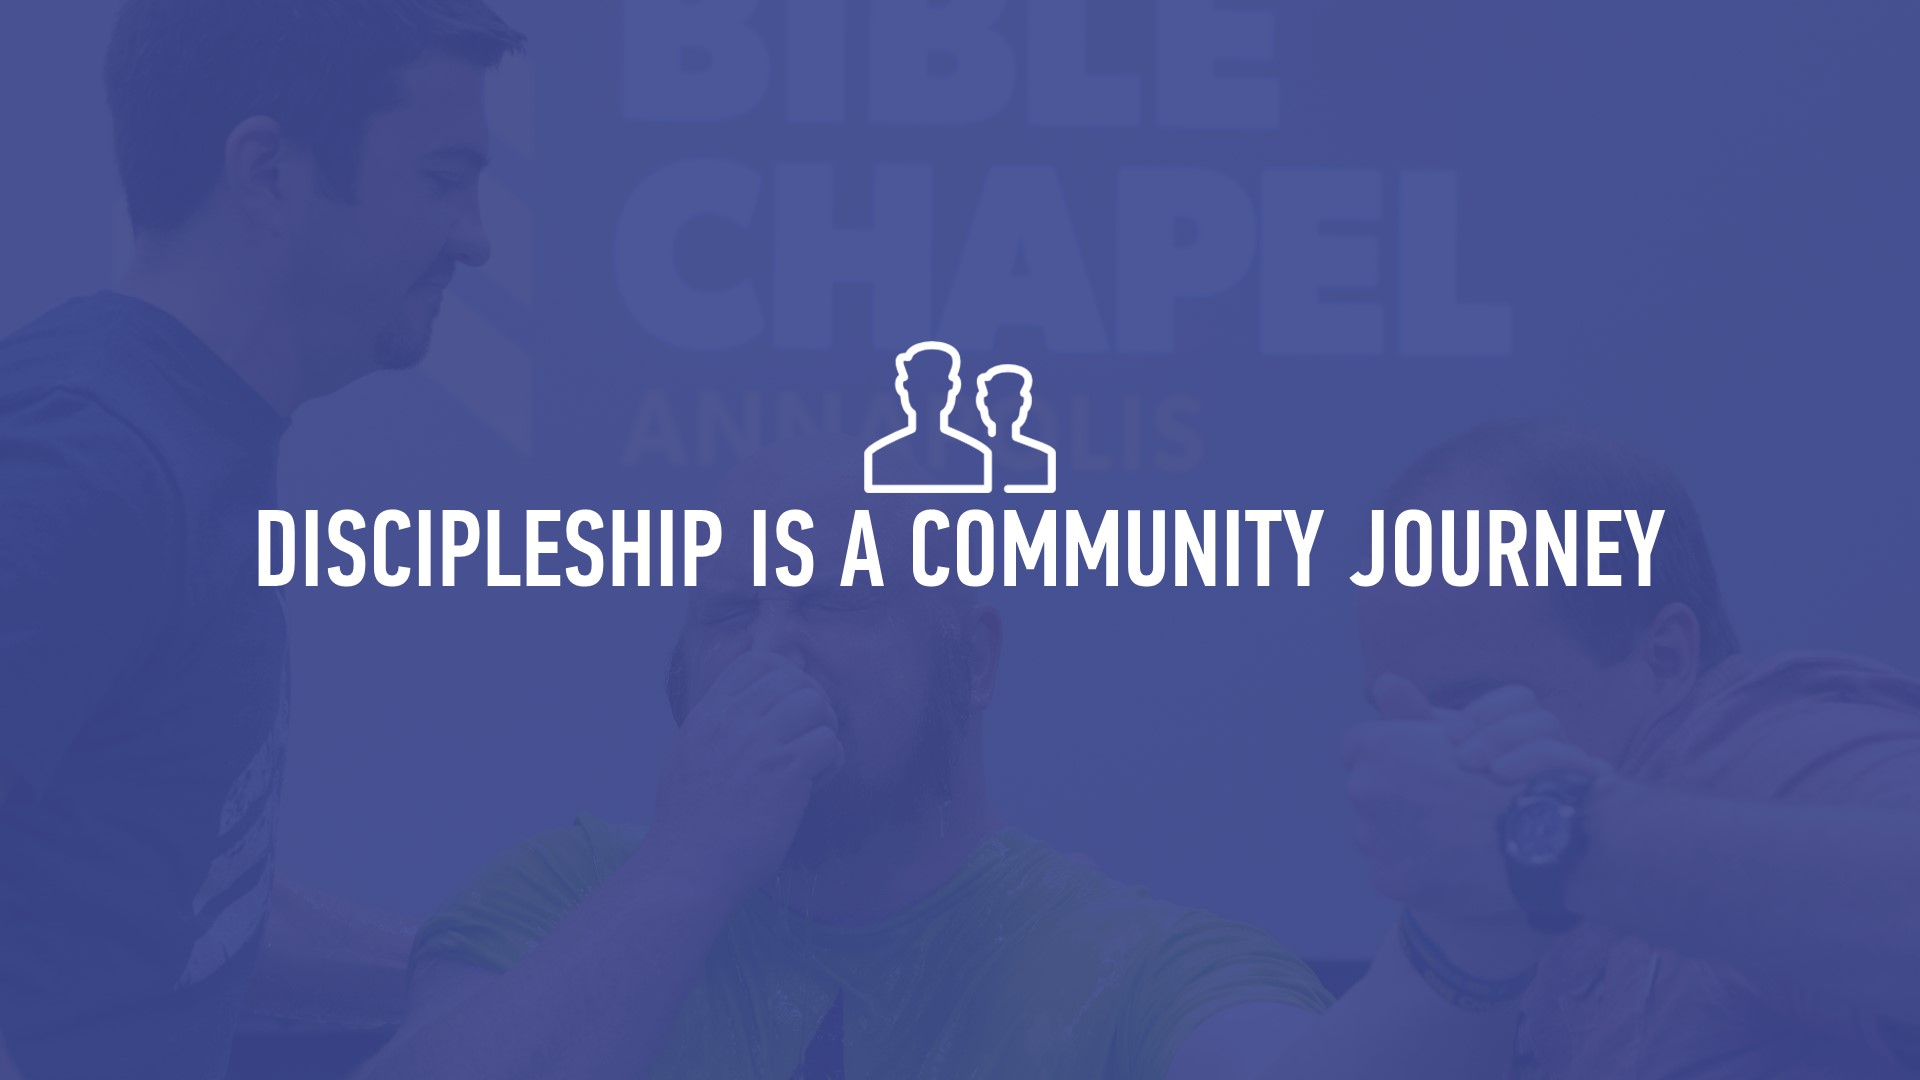 20190811 DISCIPLESHIP IS A COMMUNITY JOURNEY.jpg.JPG